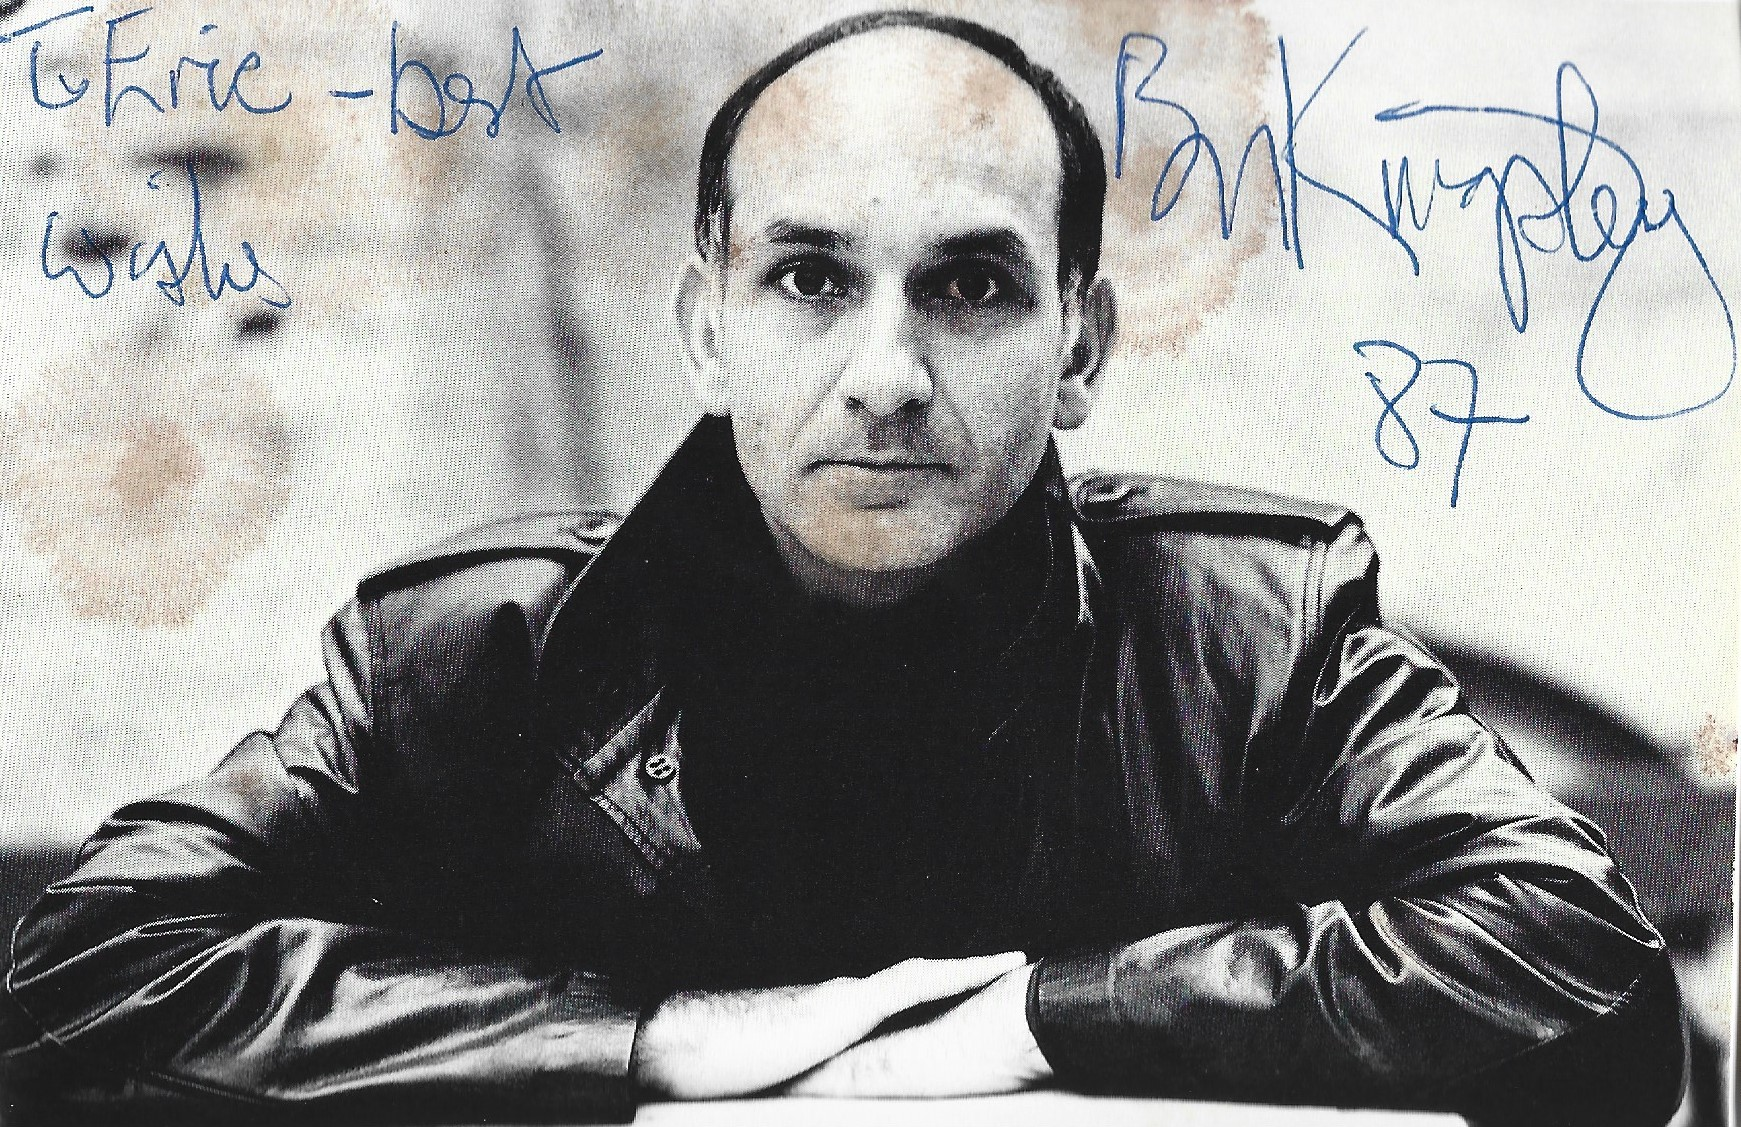 Ben Kingsley signed and dedicated 6x4 black and white photograph. Kingsley is best known for his